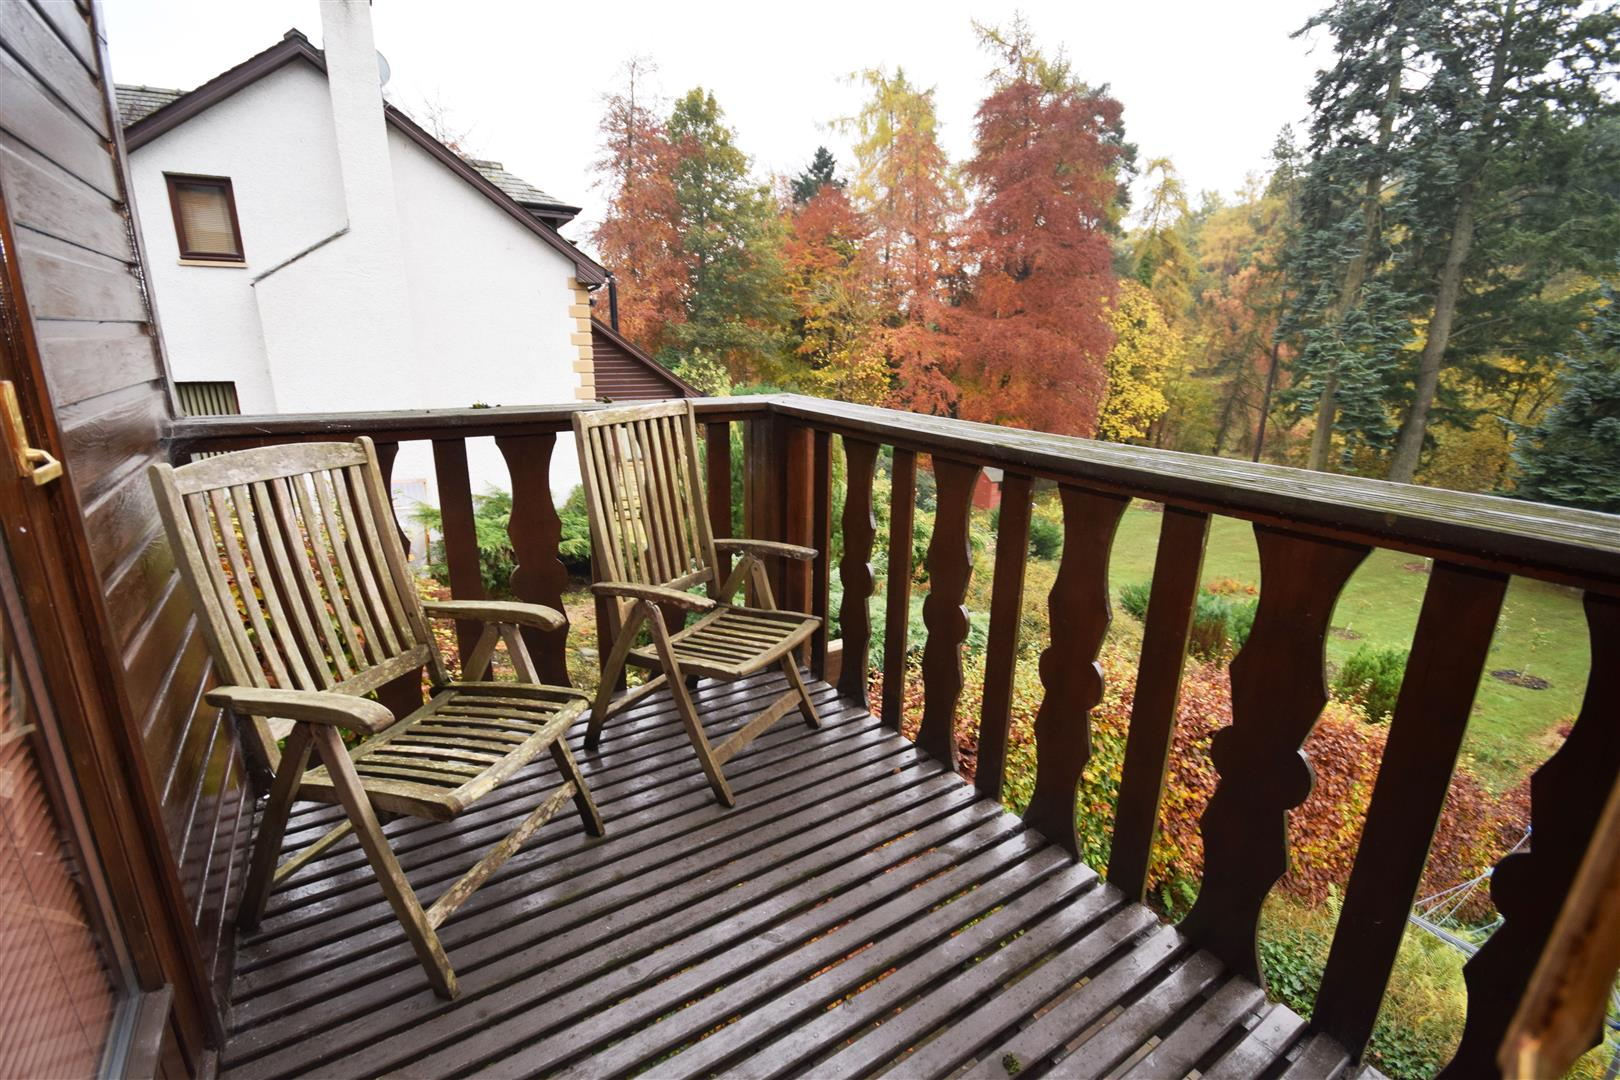 Cedar House, Balmoral Road, Rattray, Blairgowrie, Perthshire, PH10 7AH, UK